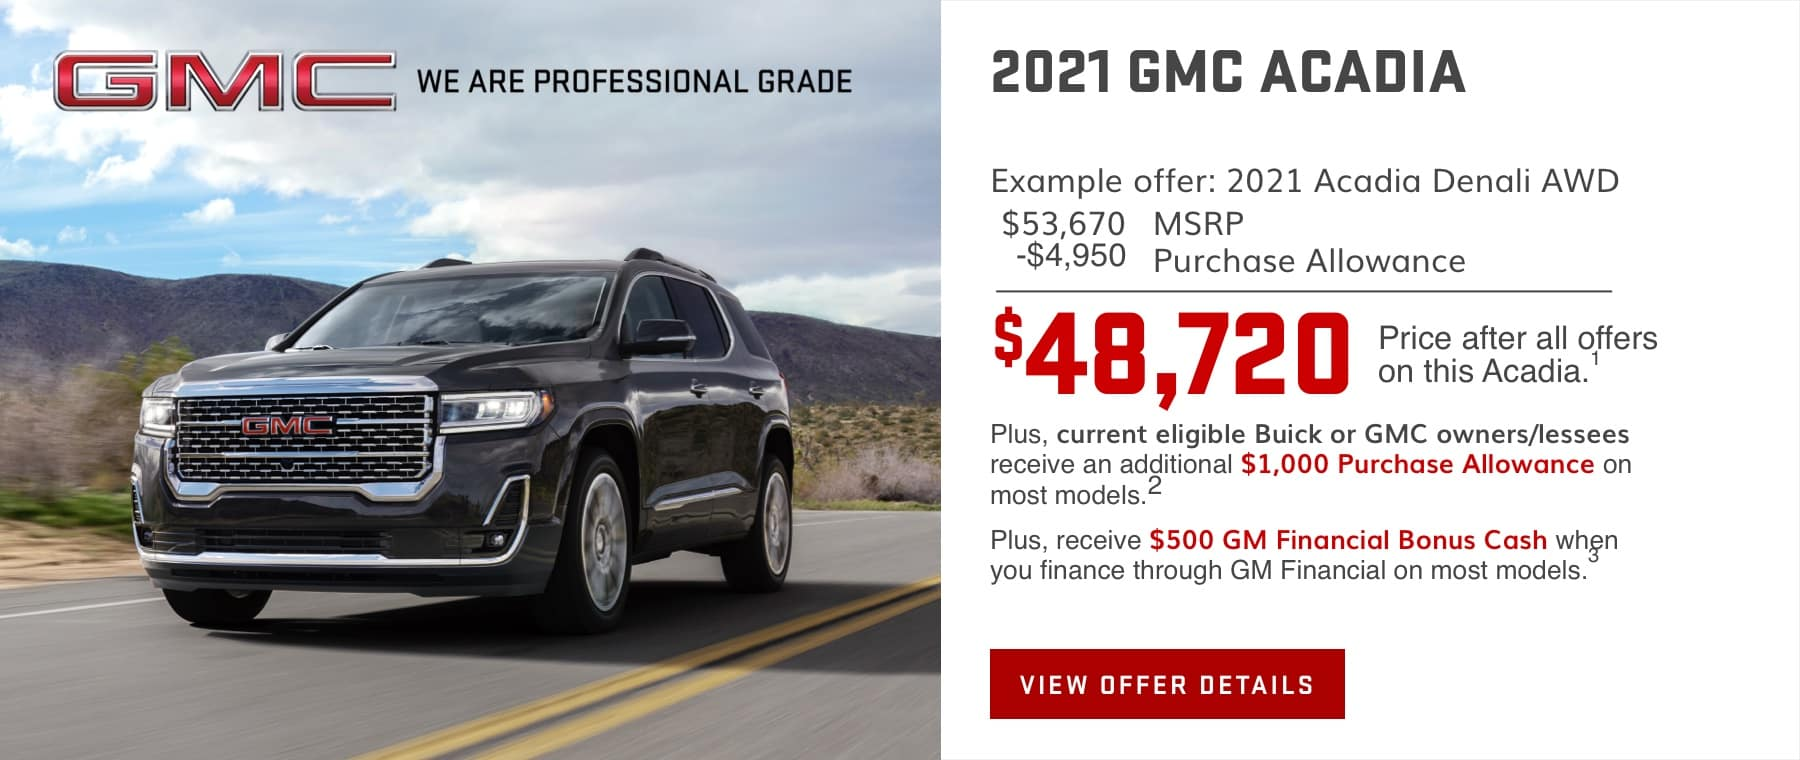 $48,720 Price after all offers on this Acadia.1 Plus, current eligible Buick or GMC owners/lessees receive an additional $1,000 Purchase Allowance on most models.2 Plus, receive $500 GM Financial Bonus Cash when you finance through GM Financial on most models.3